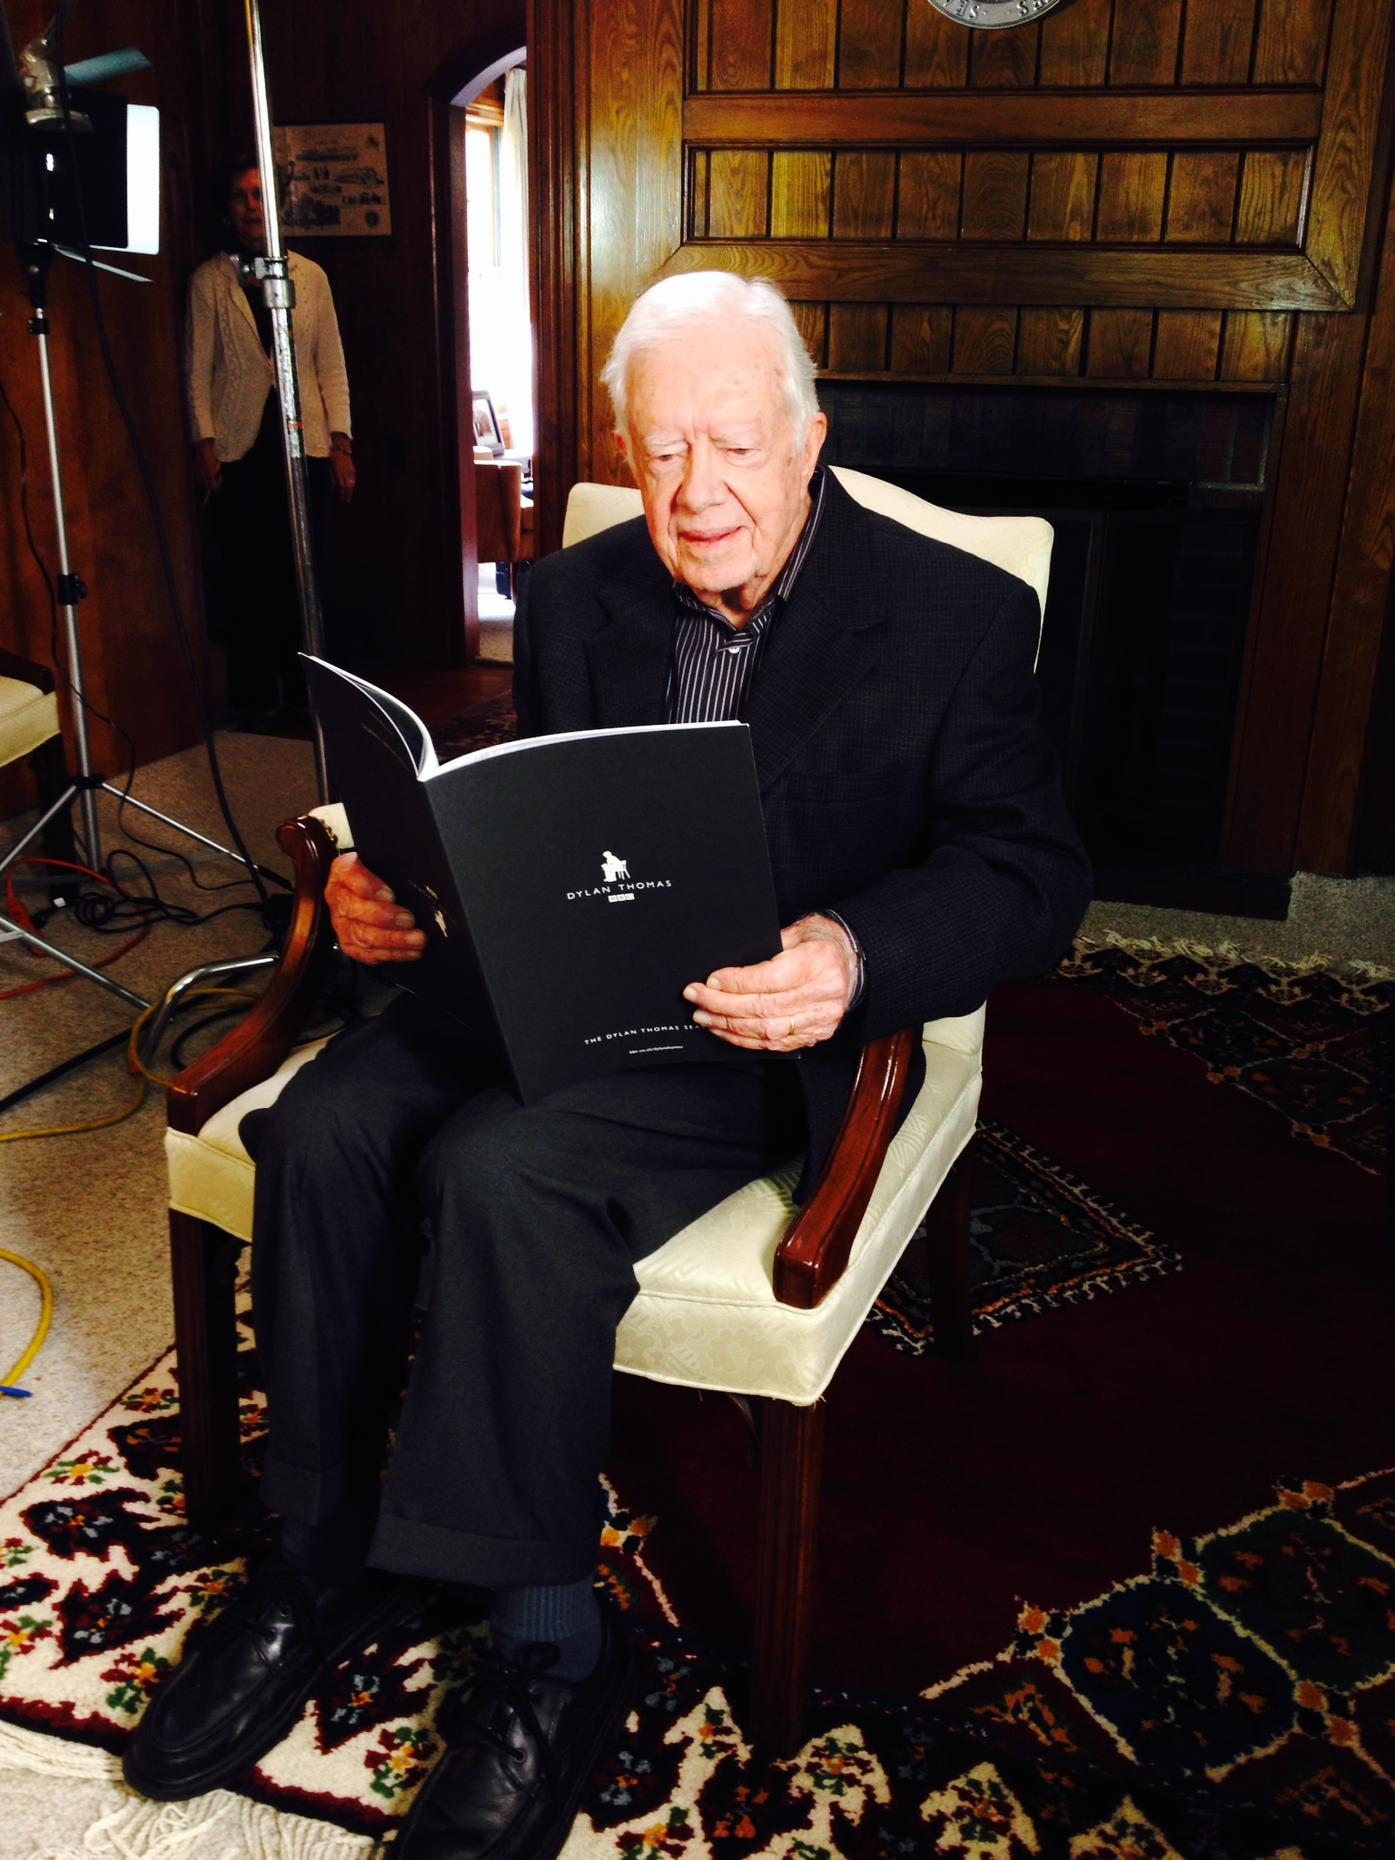 President Carter BBC Wales